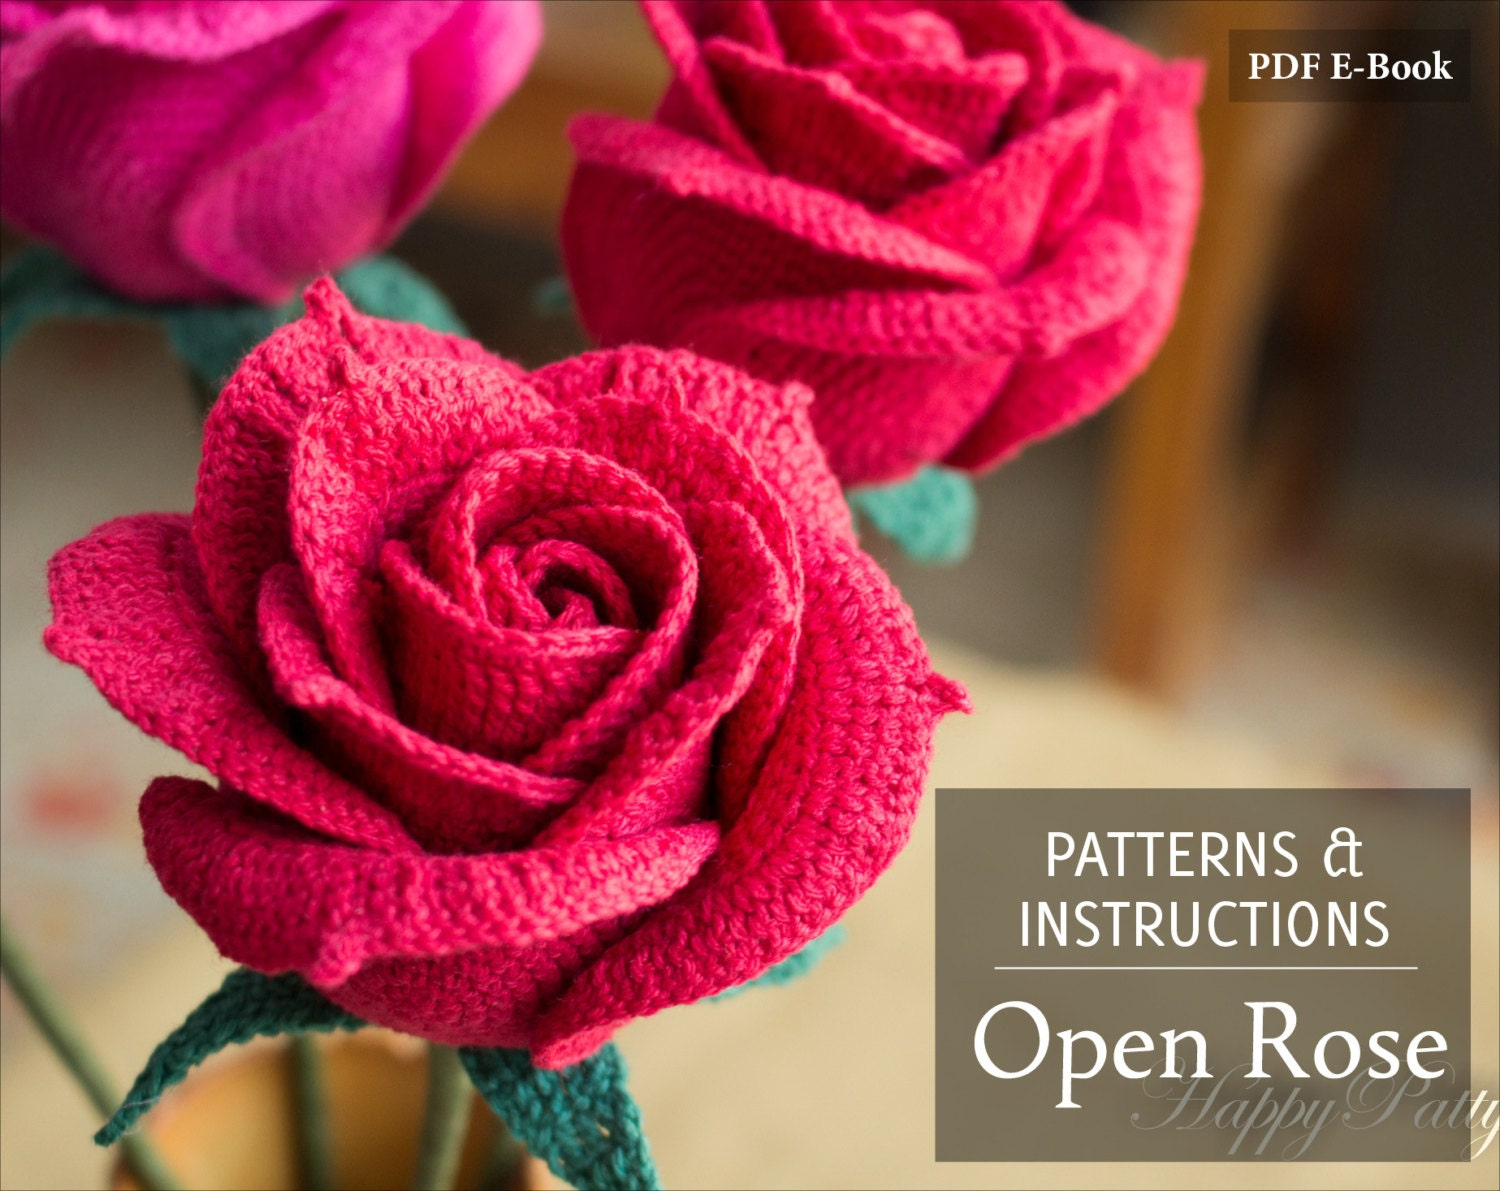 Crochet Rose Pattern Crochet Pattern for by HappyPattyCrochet